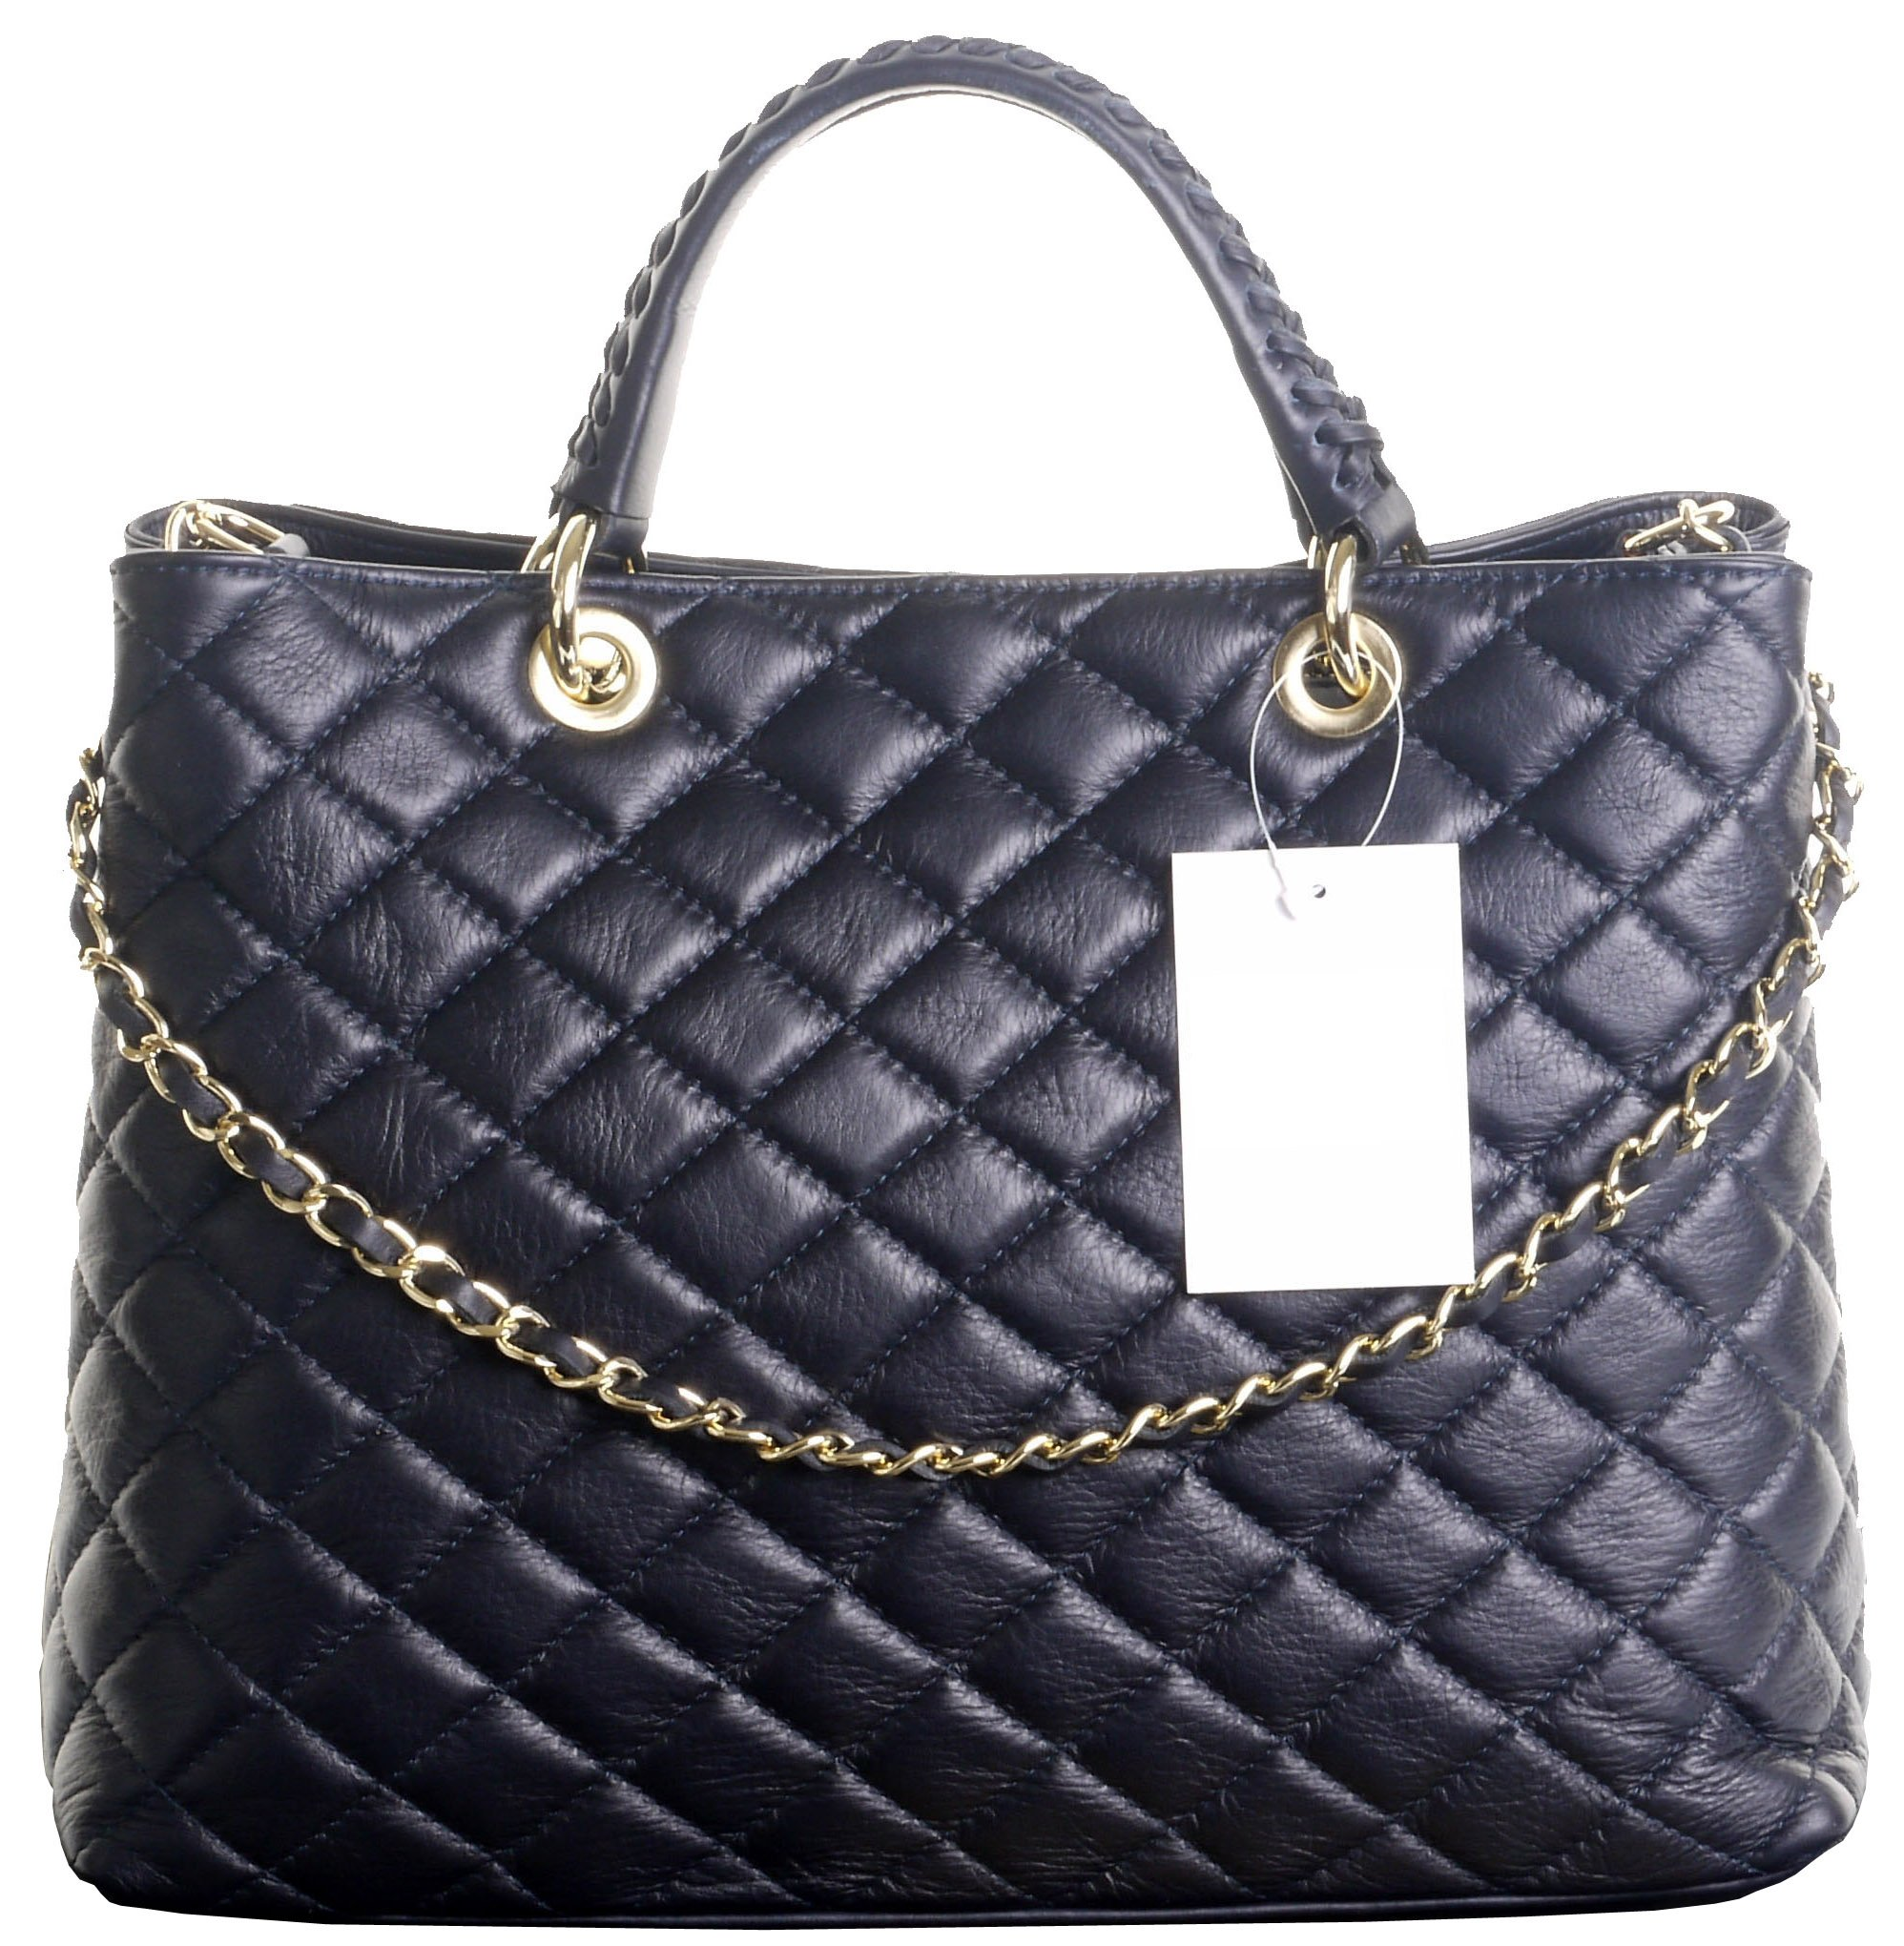 Italian Navy Blue Leather Large Top Handled Quilted Shoulder Bag Handbag, with Metal Chain and Leather, Strap Includes a Branded Protective Storage Bag by Primo Sacchi